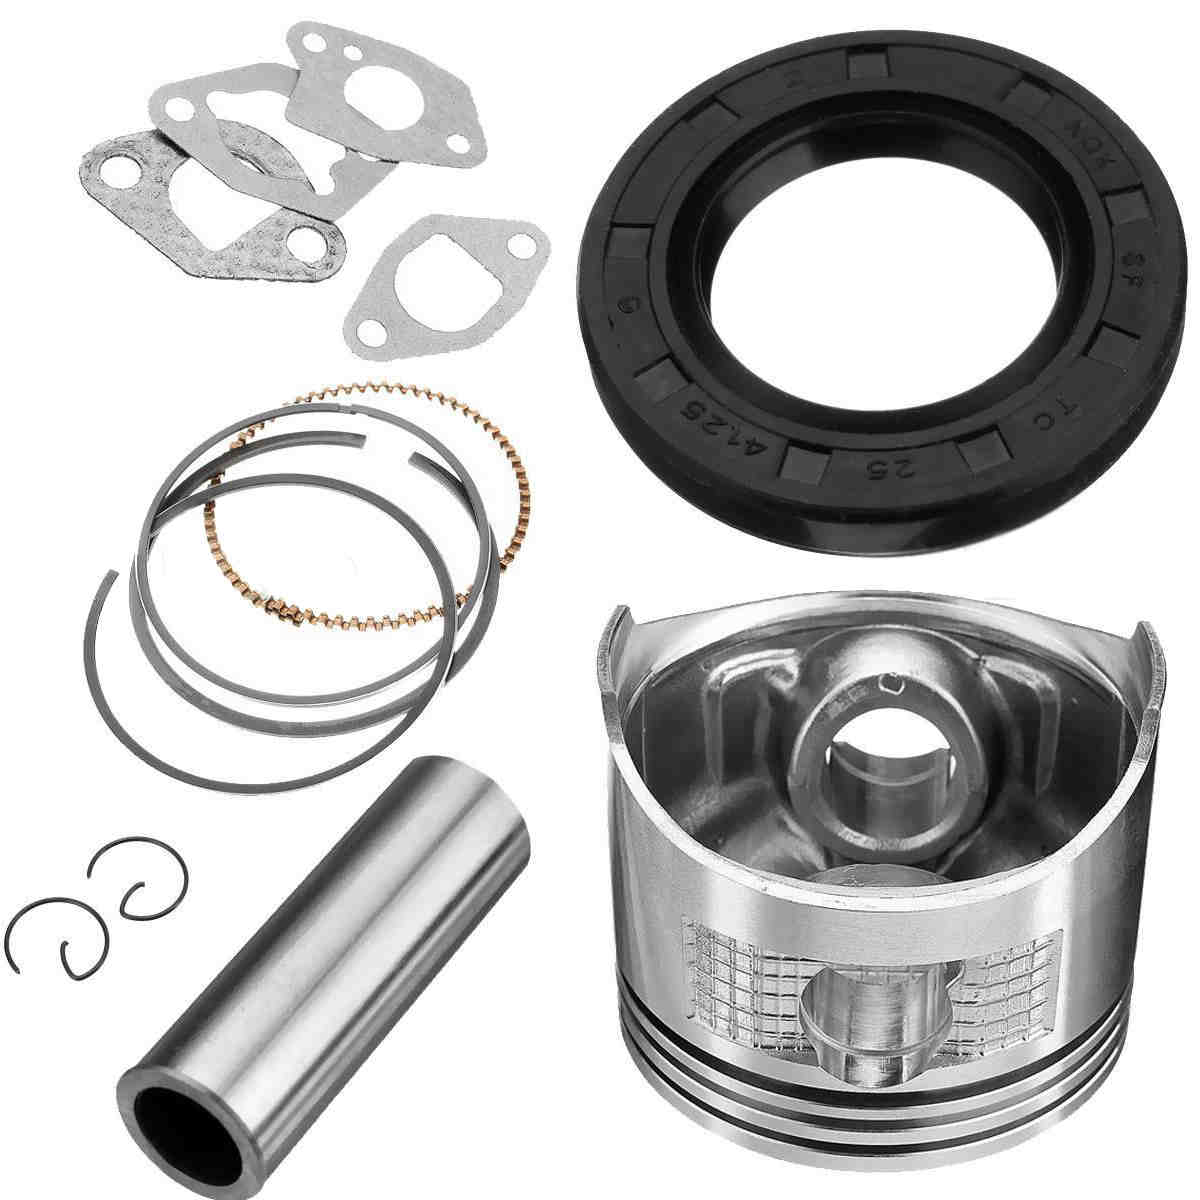 DWZ Rebuild Kit Set w/ Piston Ring + Gasket For GX160 GX200 5.5 6.5HP Engine New jiangdong engine parts for tractor the set of fuel pump repair kit for engine jd495